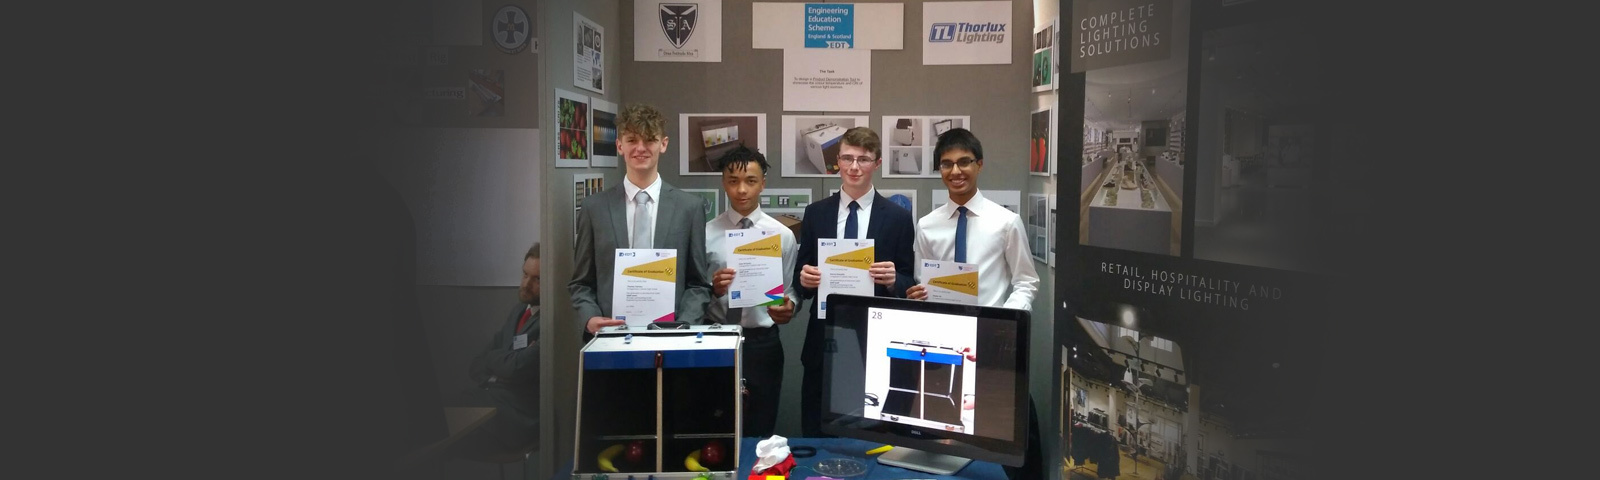 Thorlux and St Augustine's Catholic School celebrate EES success gallery image